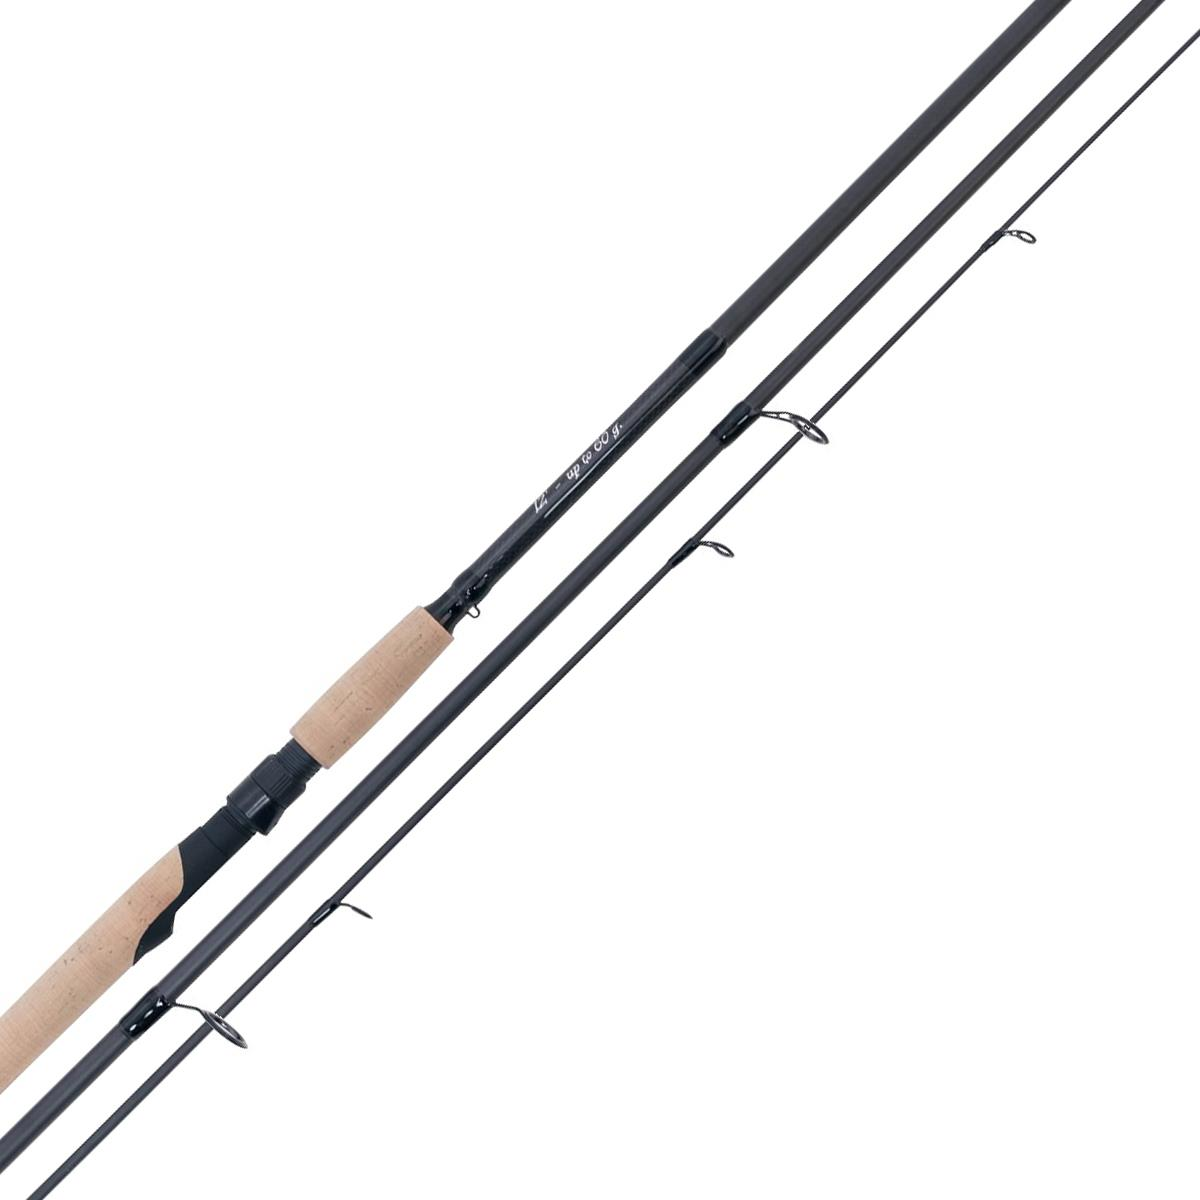 Lawson Atlantic Salmon S2 3-delt